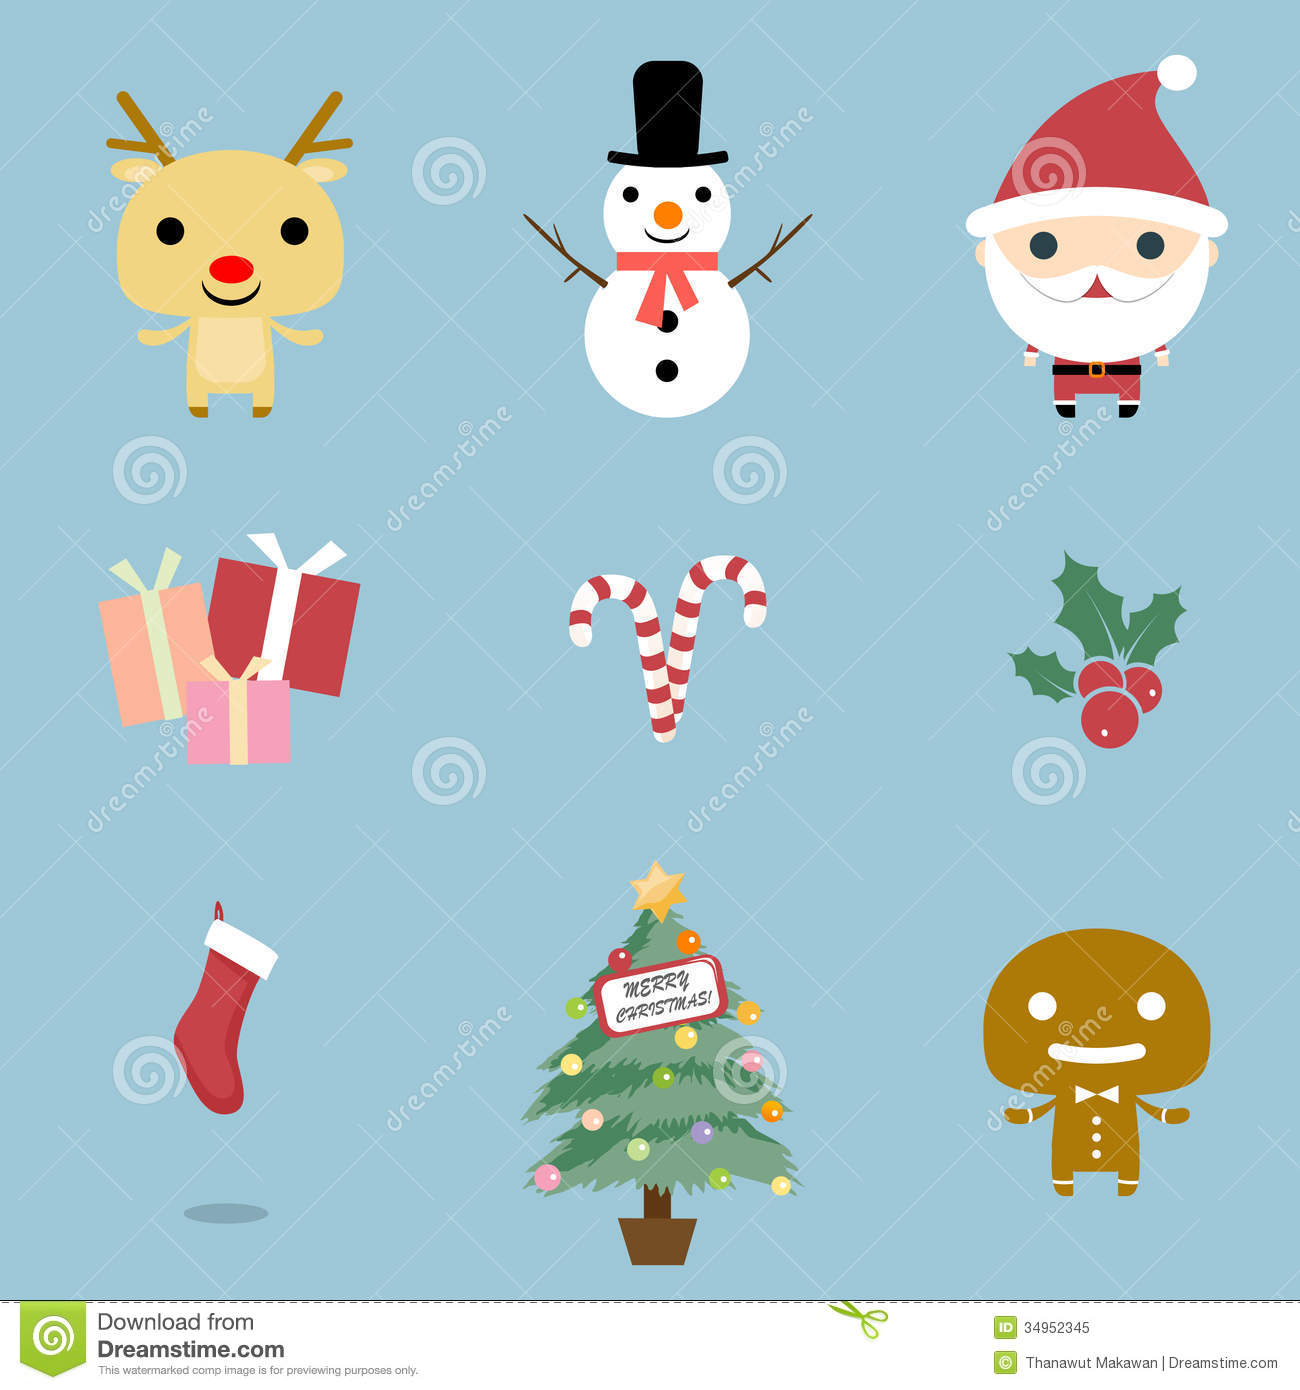 Christmas Illustrations.Christmas Icons Set Stock Vector Illustration Of Creative